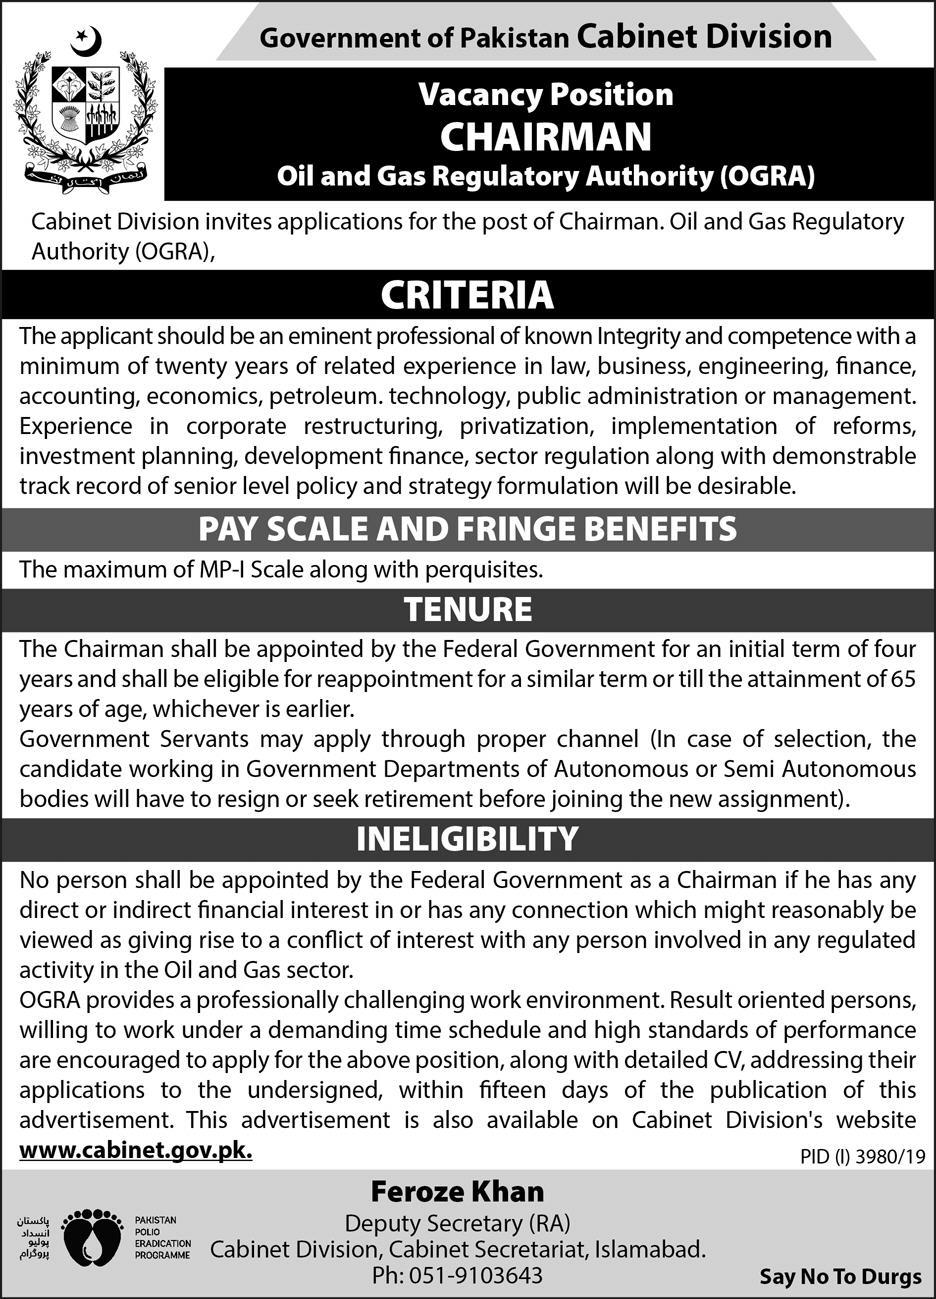 Jobs in Government of Pakistan Cabinet Division 2020